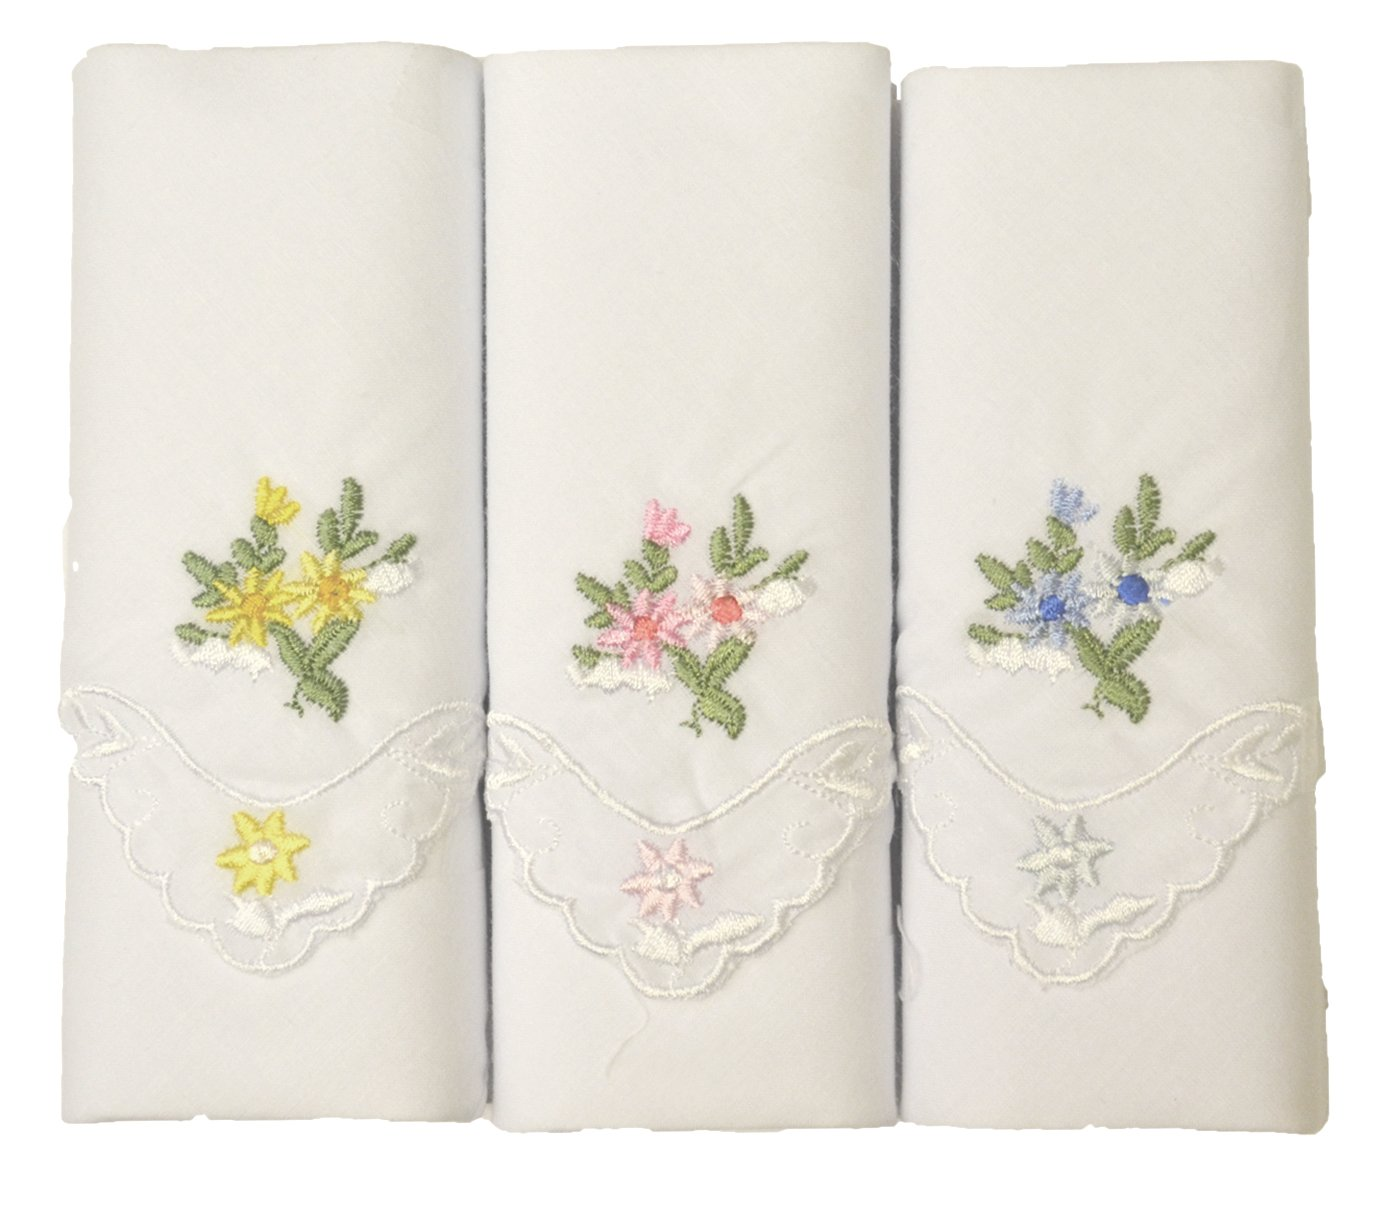 3 Boxed Ladies Coloured Embroidered Lace Corner Handkerchiefs 100% cotton